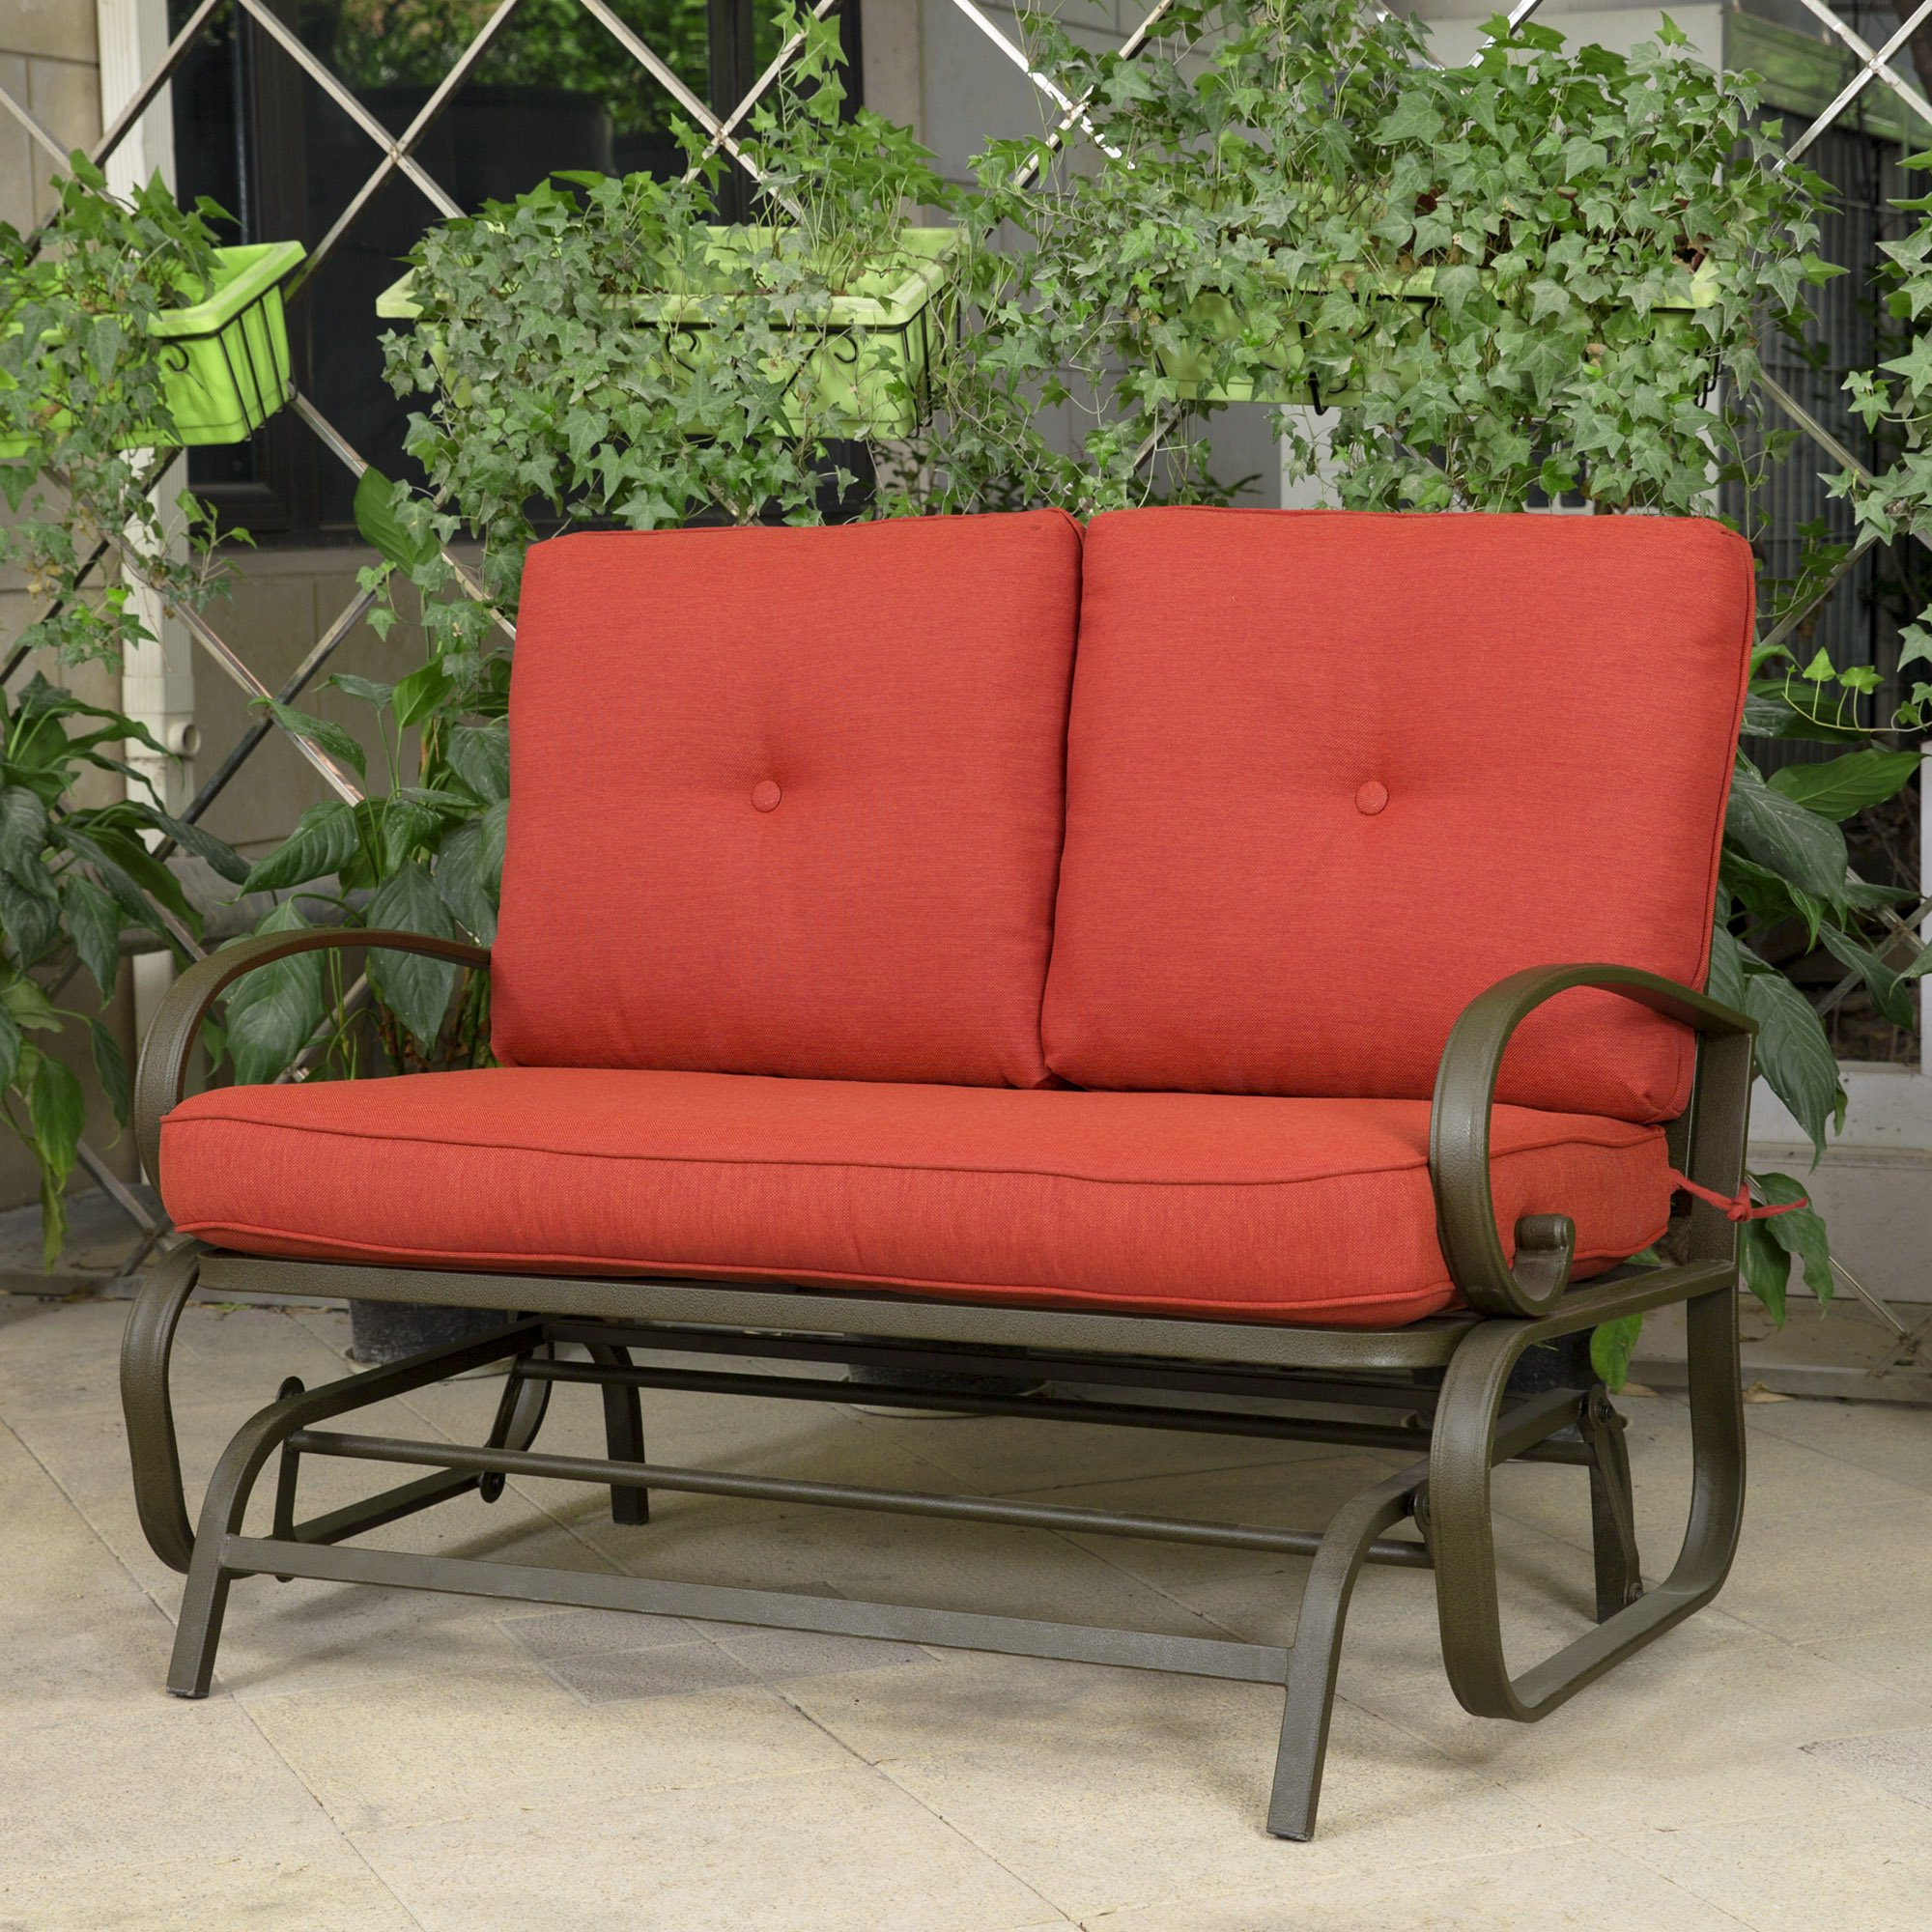 Well Known Buy Outdoor Patio Leisure Swing Rocker Glider Bench Loveseat With Regard To 2 Person Loveseat Chair Patio Porch Swings With Rocker (View 27 of 30)